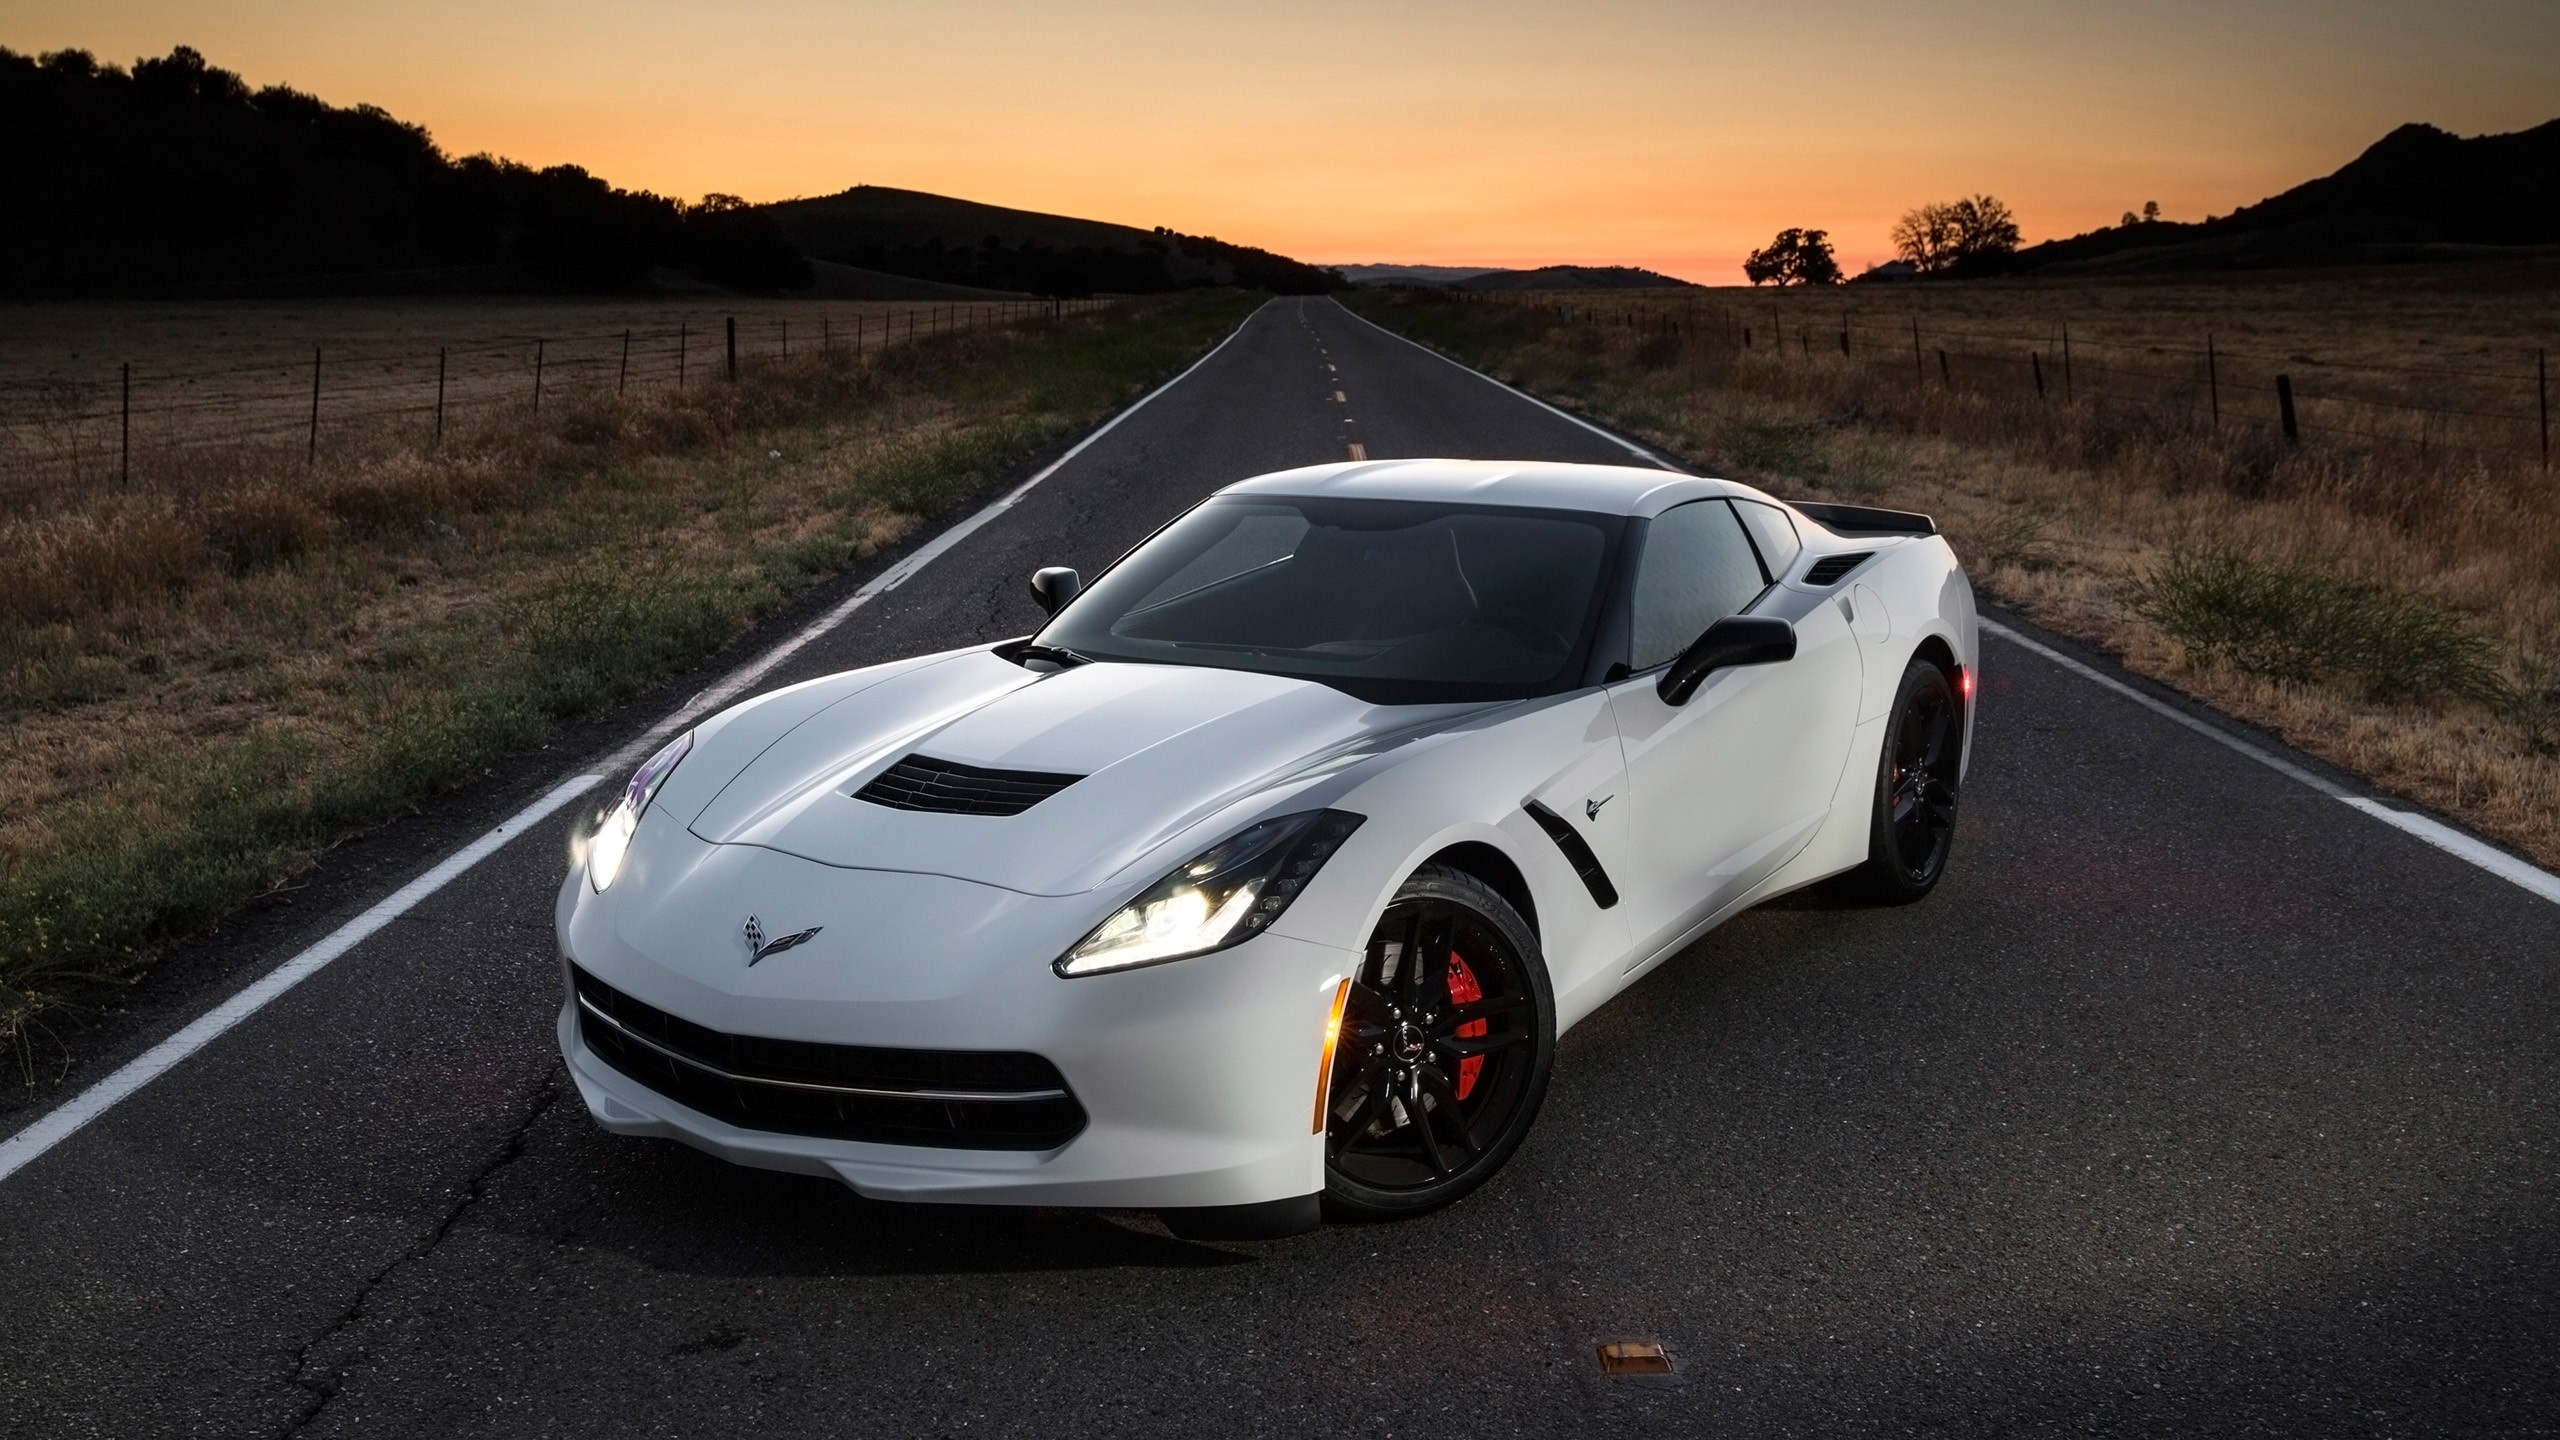 2014 Chevrolet Corvette Stingray Wallpaper Hd Car